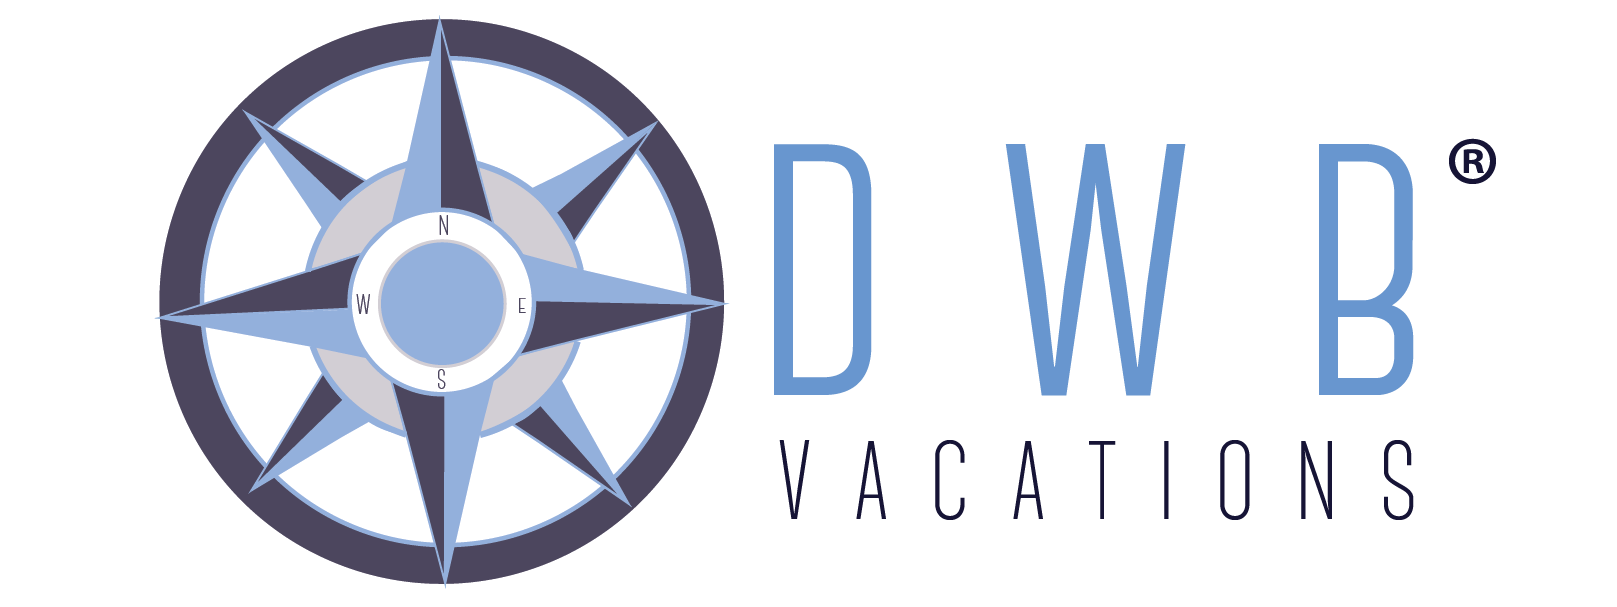 DWB Vacations